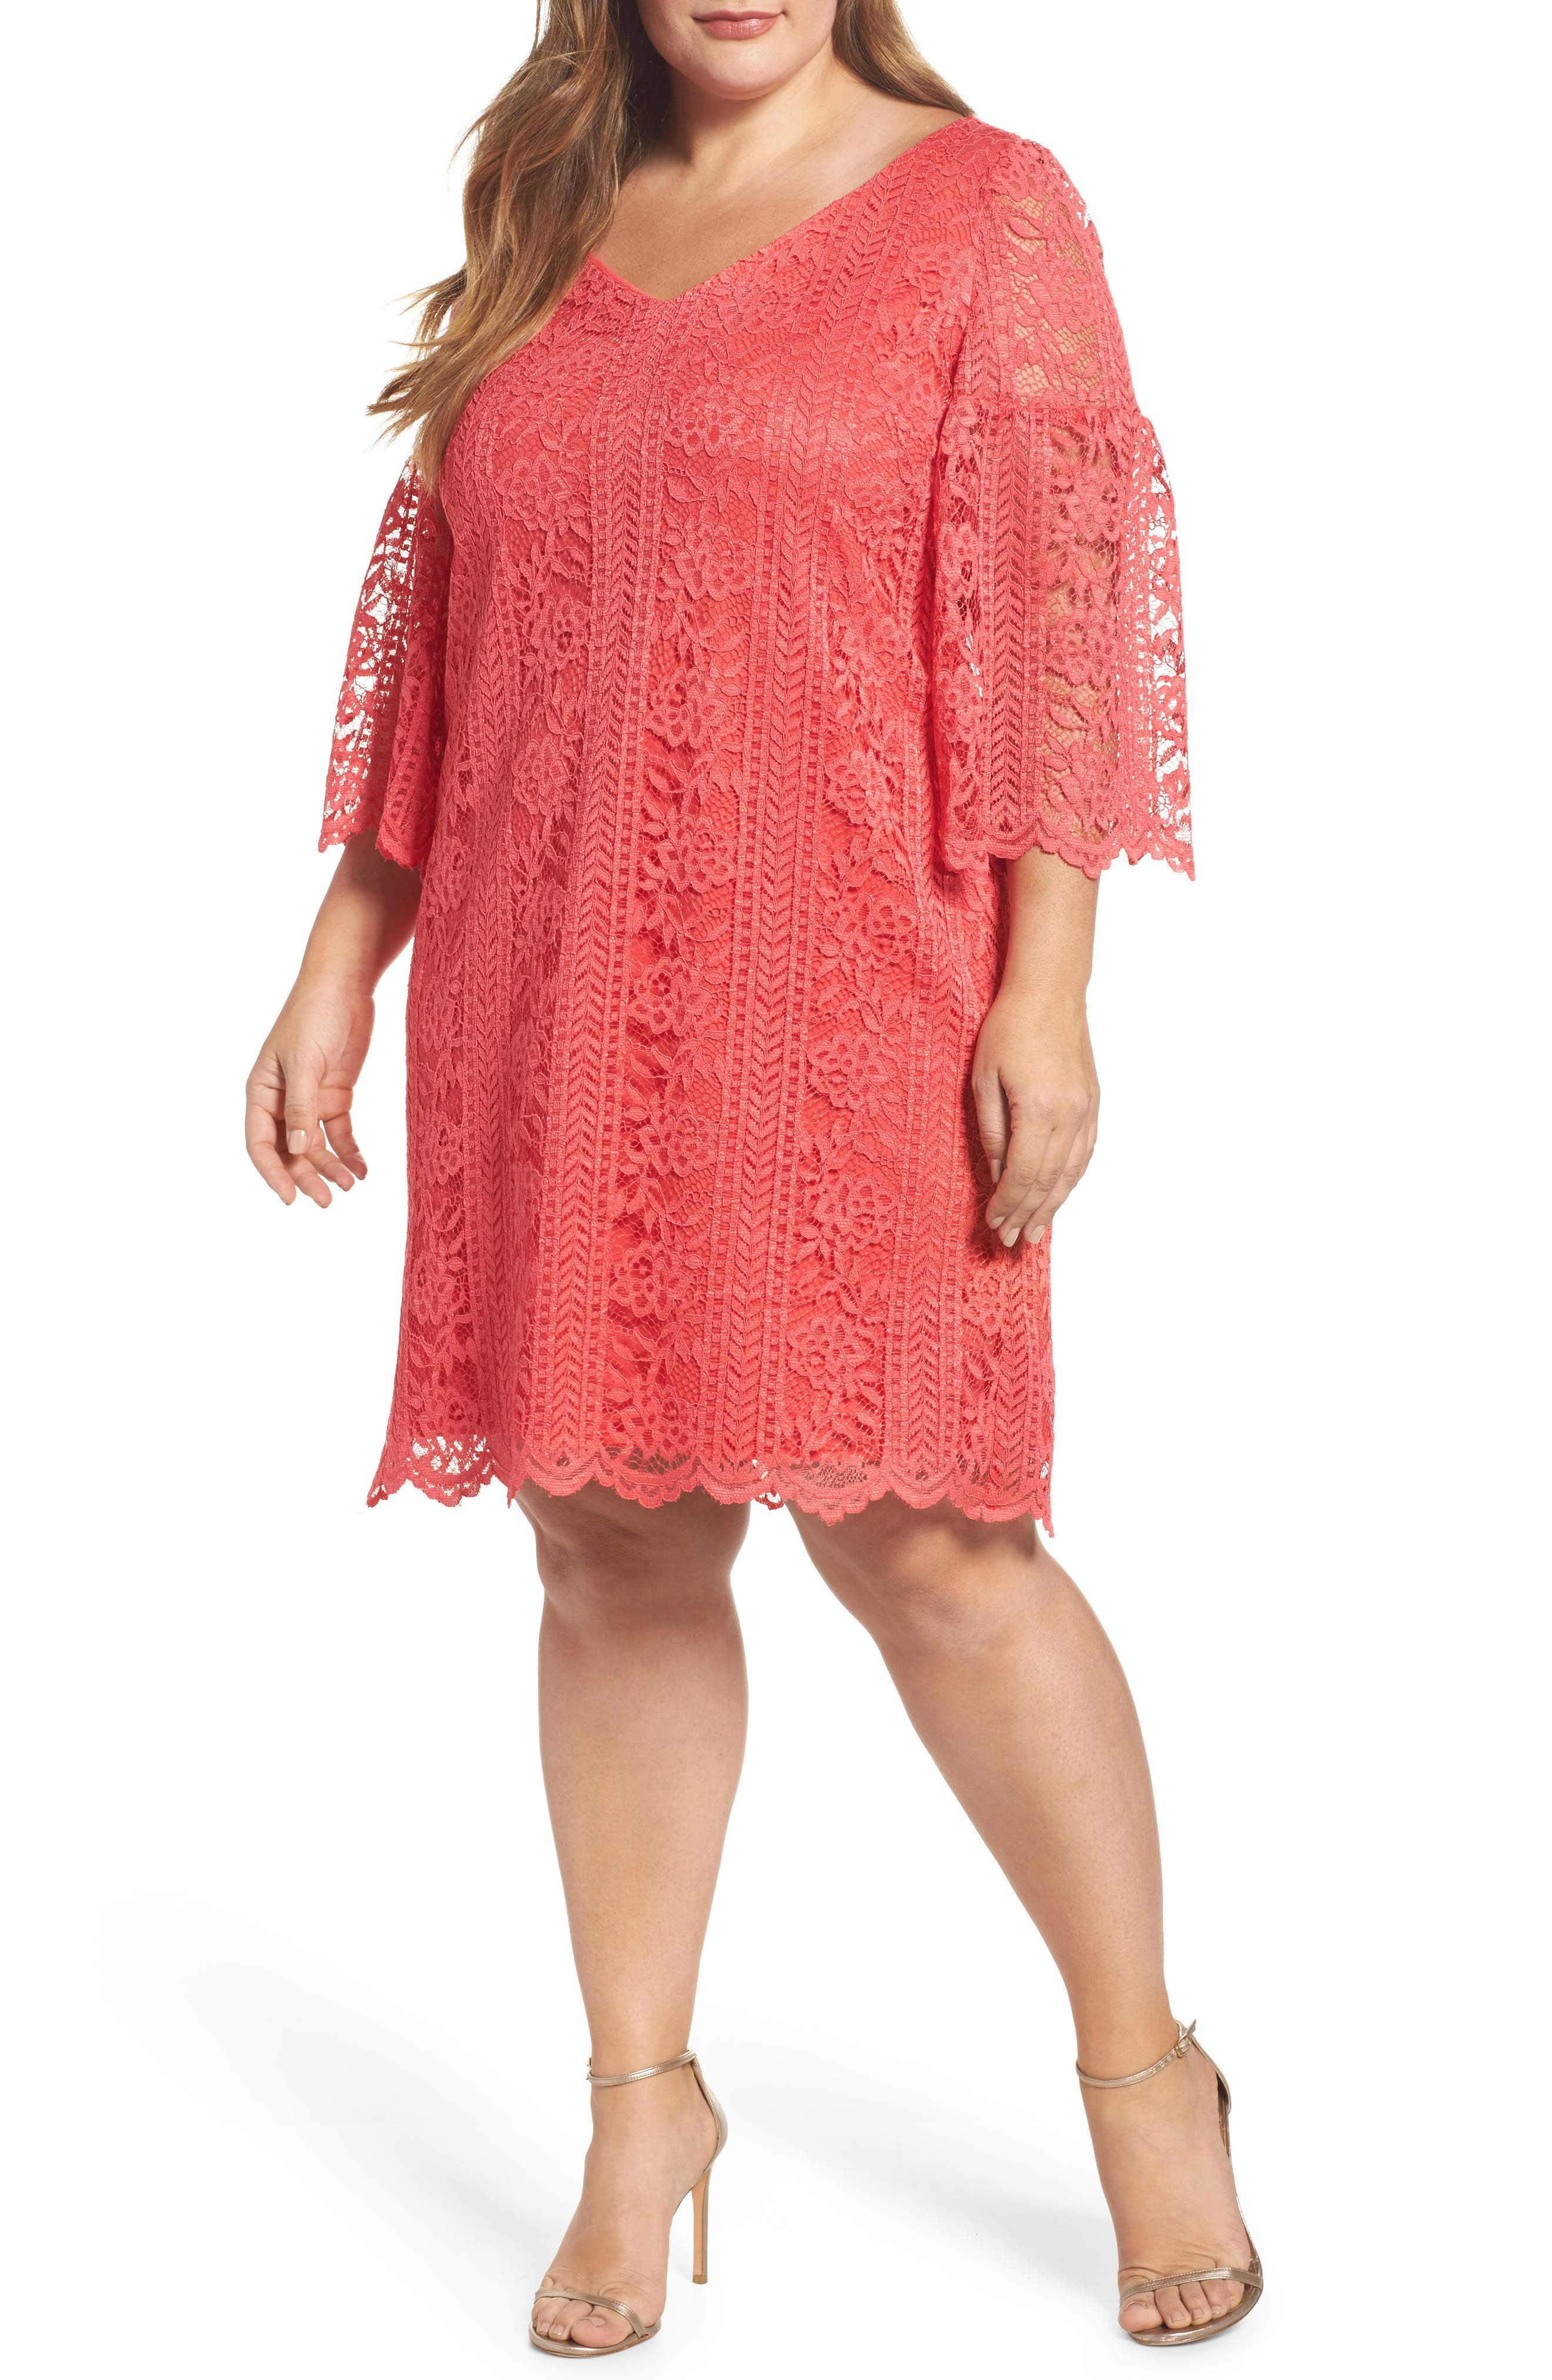 Alternate Image 1 Selected - Gabby Skye Bell Sleeve Lace Shift Dress (Plus Size)